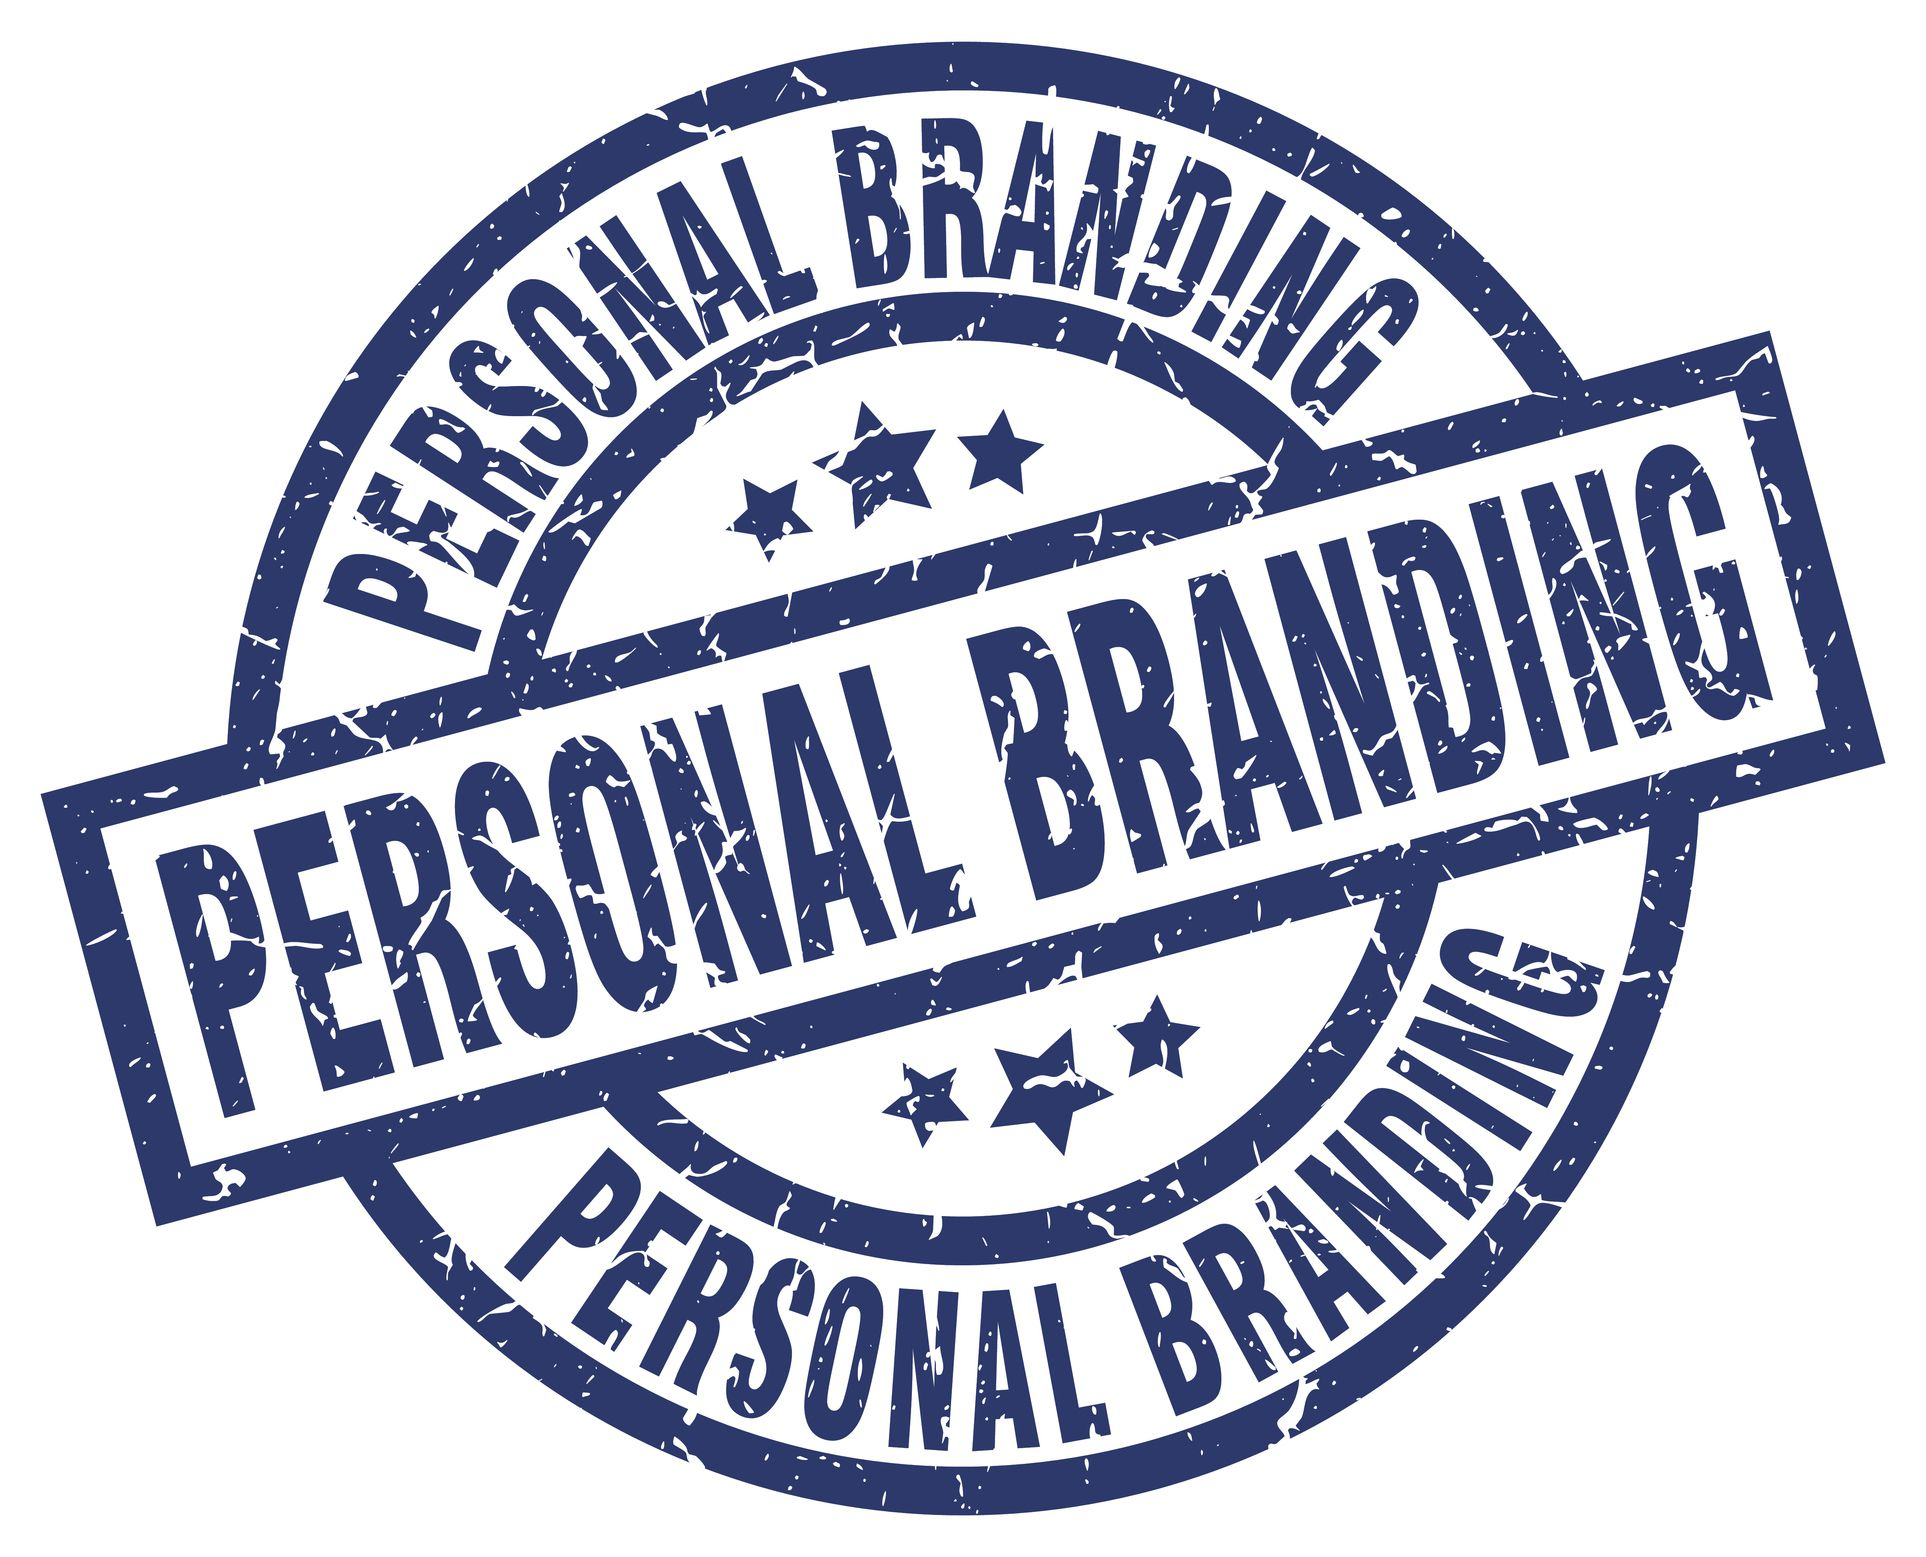 personal branding brand creating examples yourself characters describe tips auto uploaded user